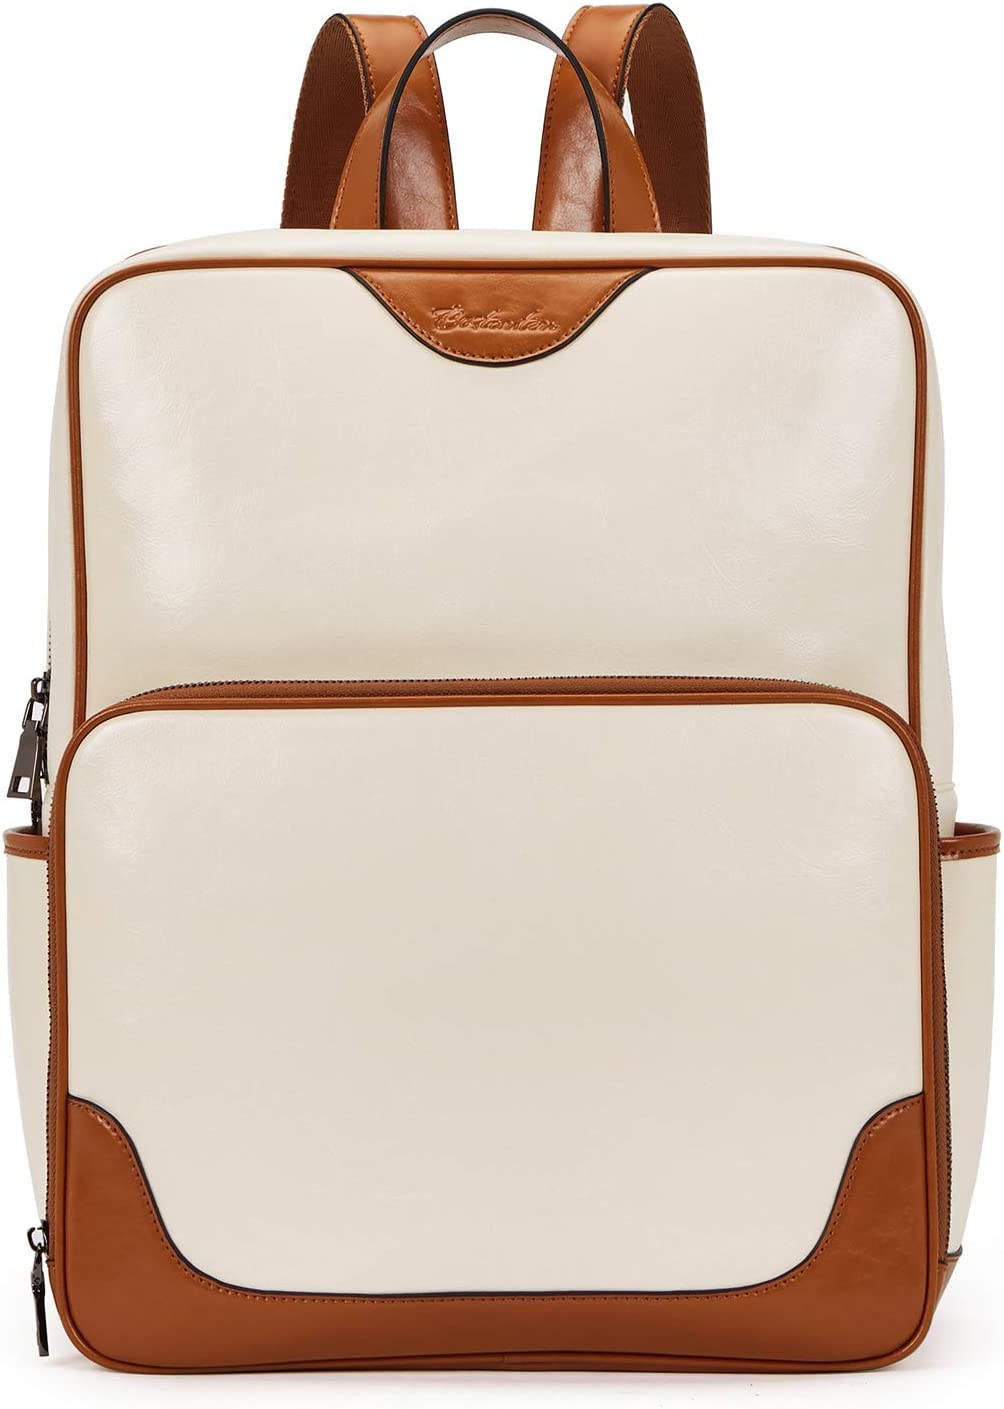 BOSTANTEN Womens Leather Backpack Purse Laptop Bag Casual College Casual Bags Fashion Daypack